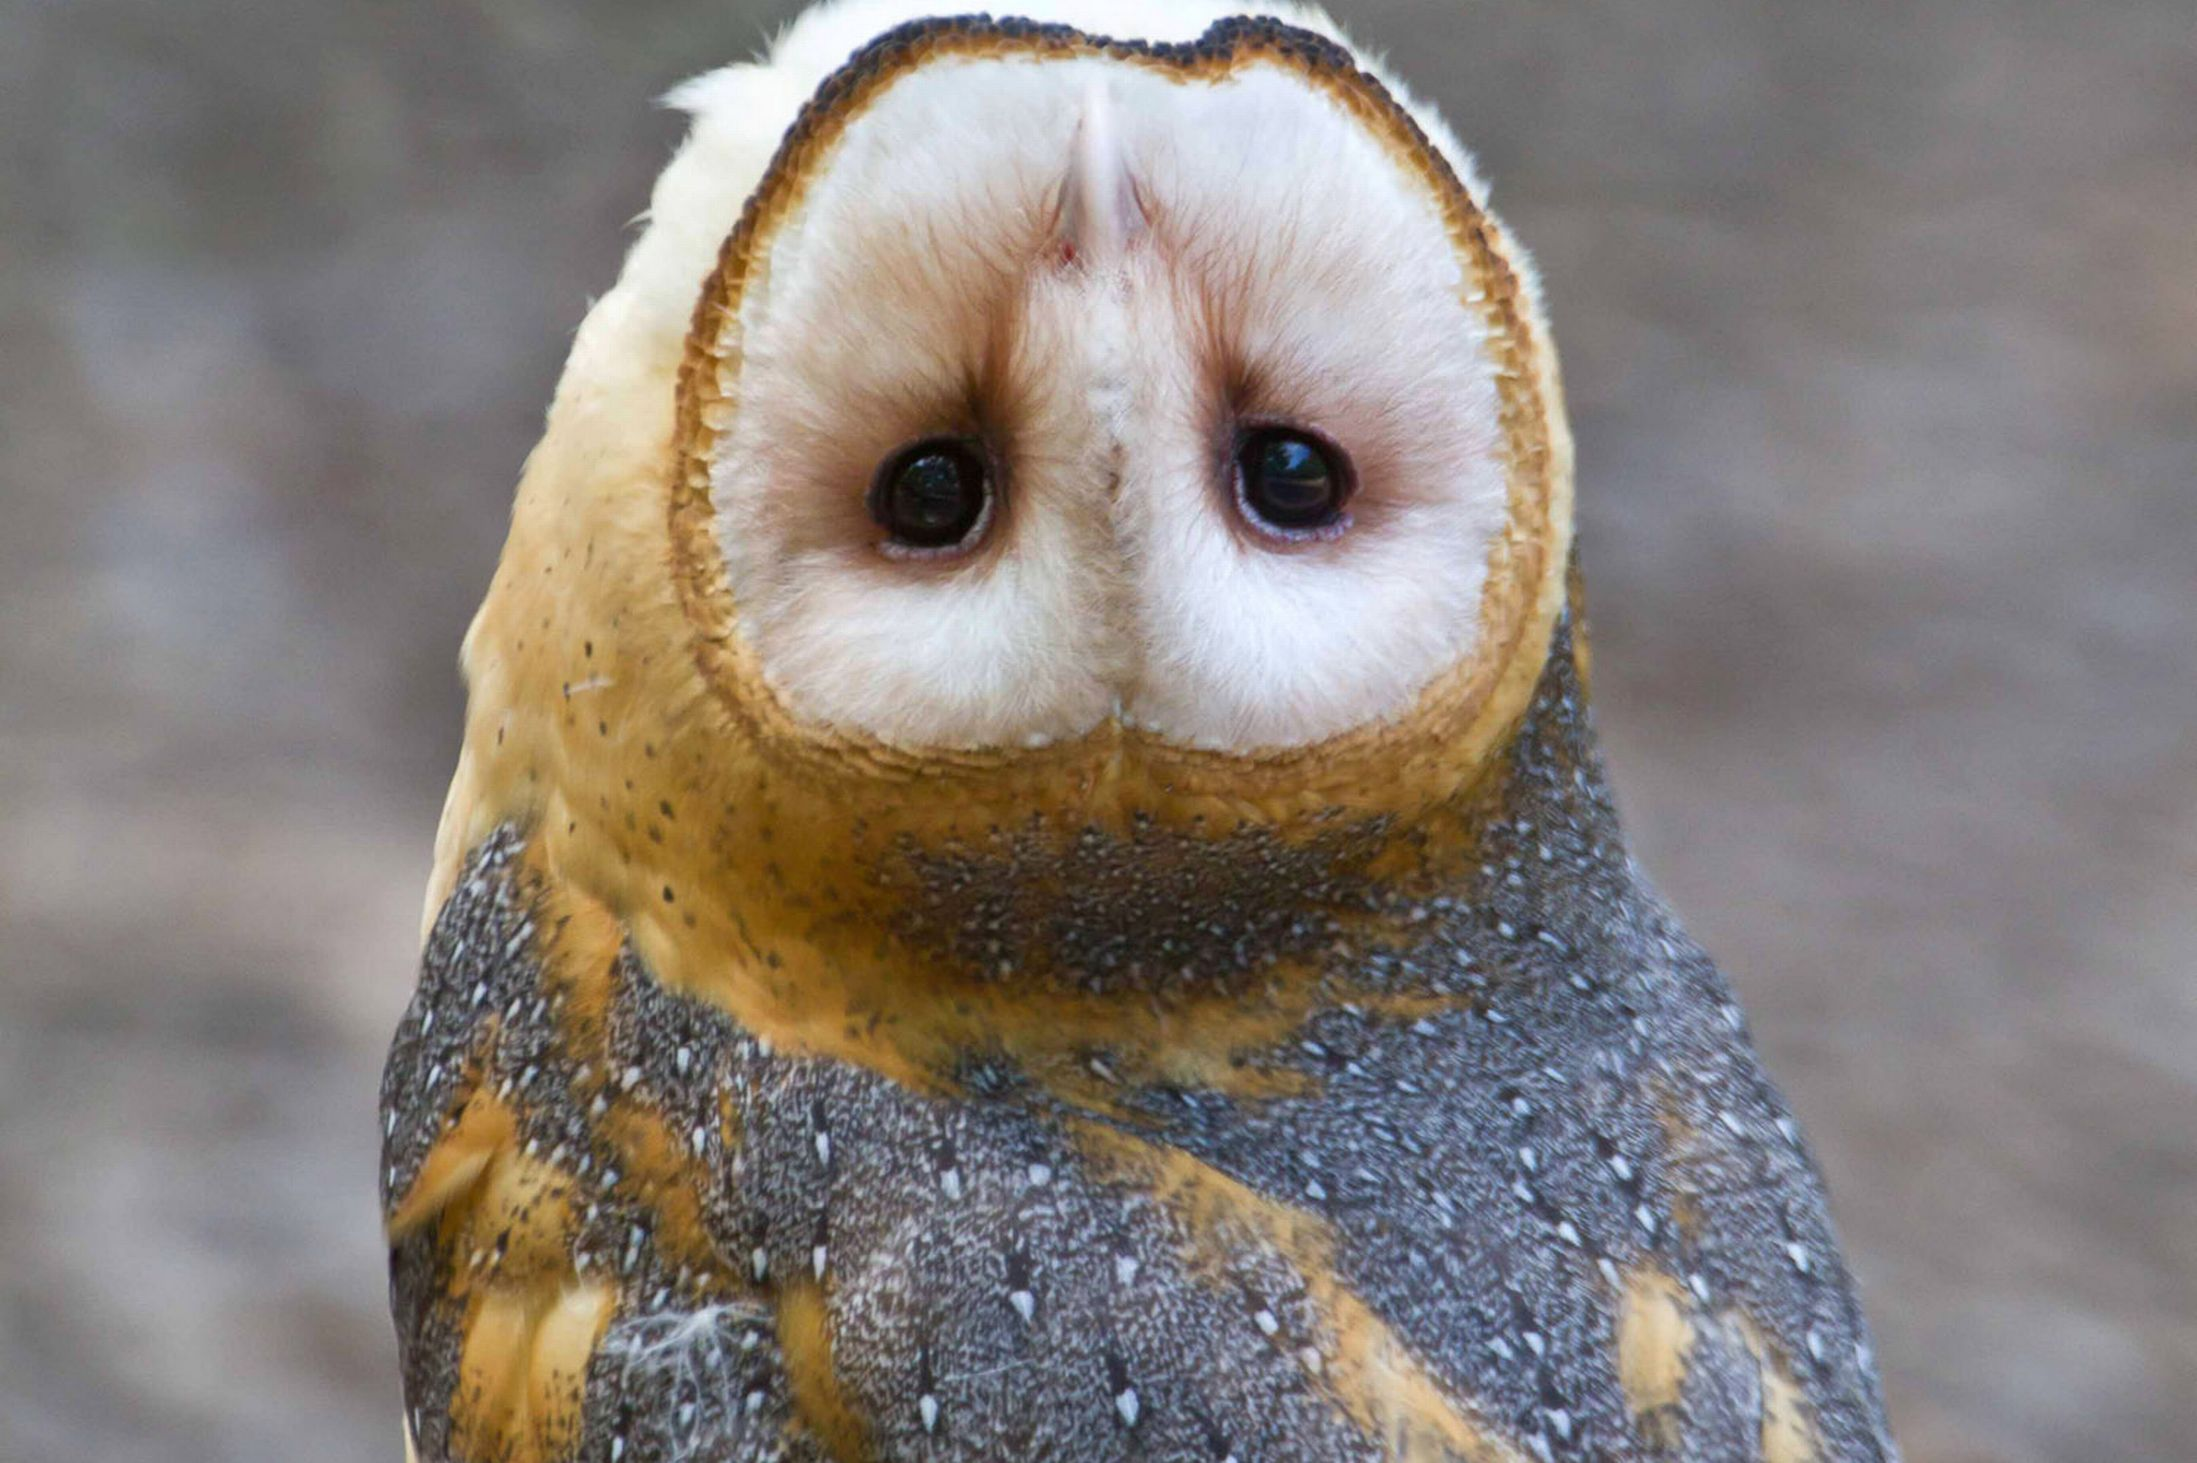 £££-Owl-with-an-upside-down-head.jpg